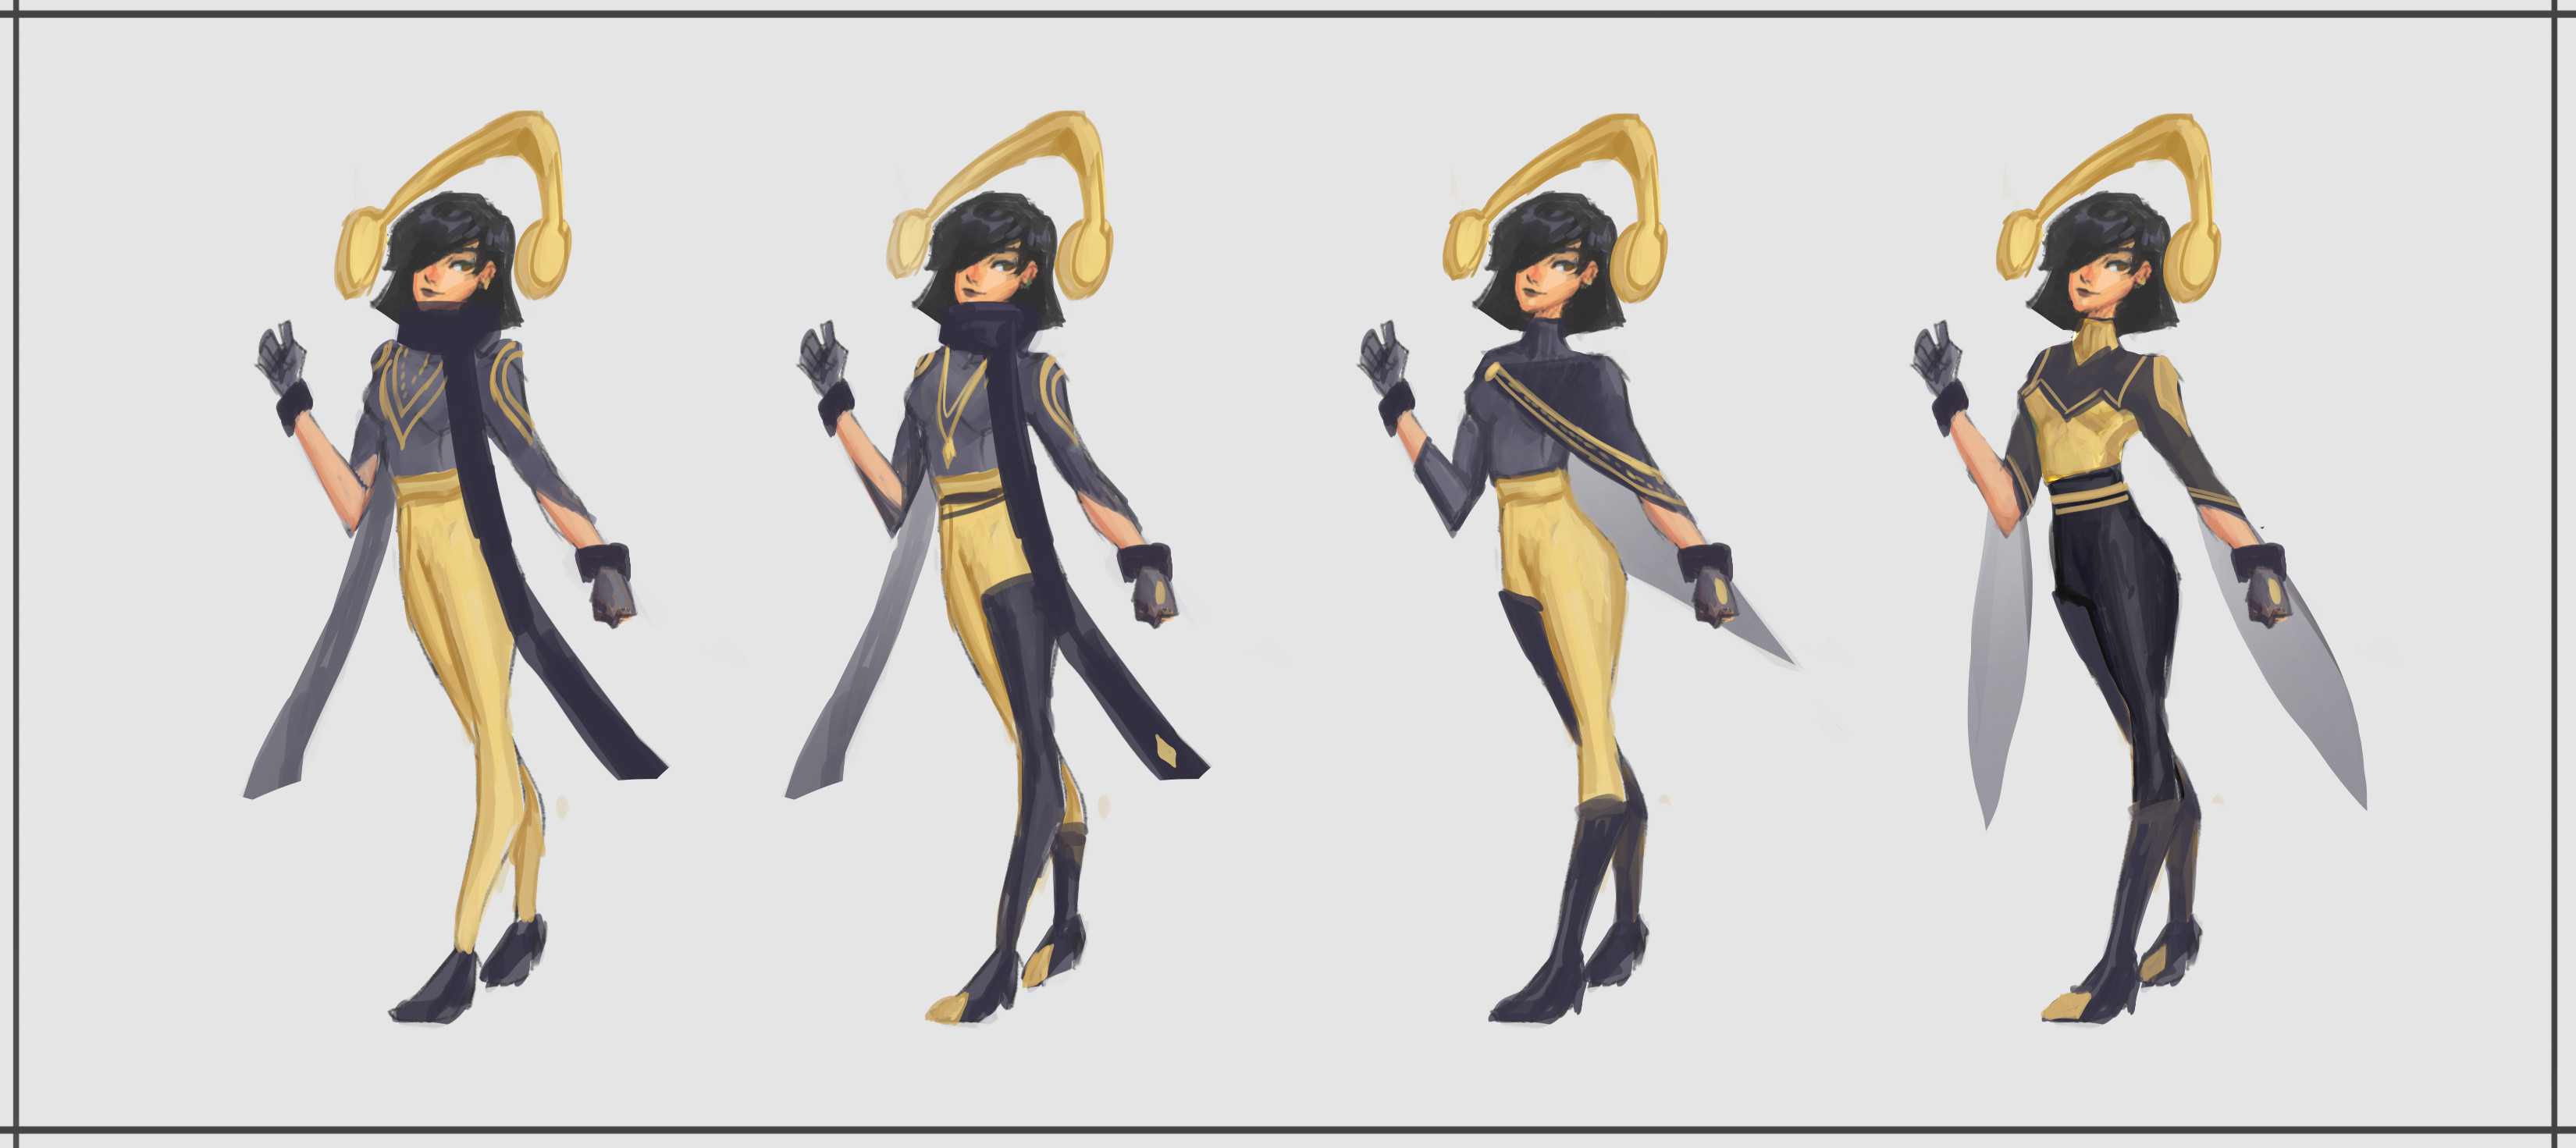 Figured I wanted to go back to her fighter roots since the scarf gave more mage vibes. Shortened the scarf and did variations without it